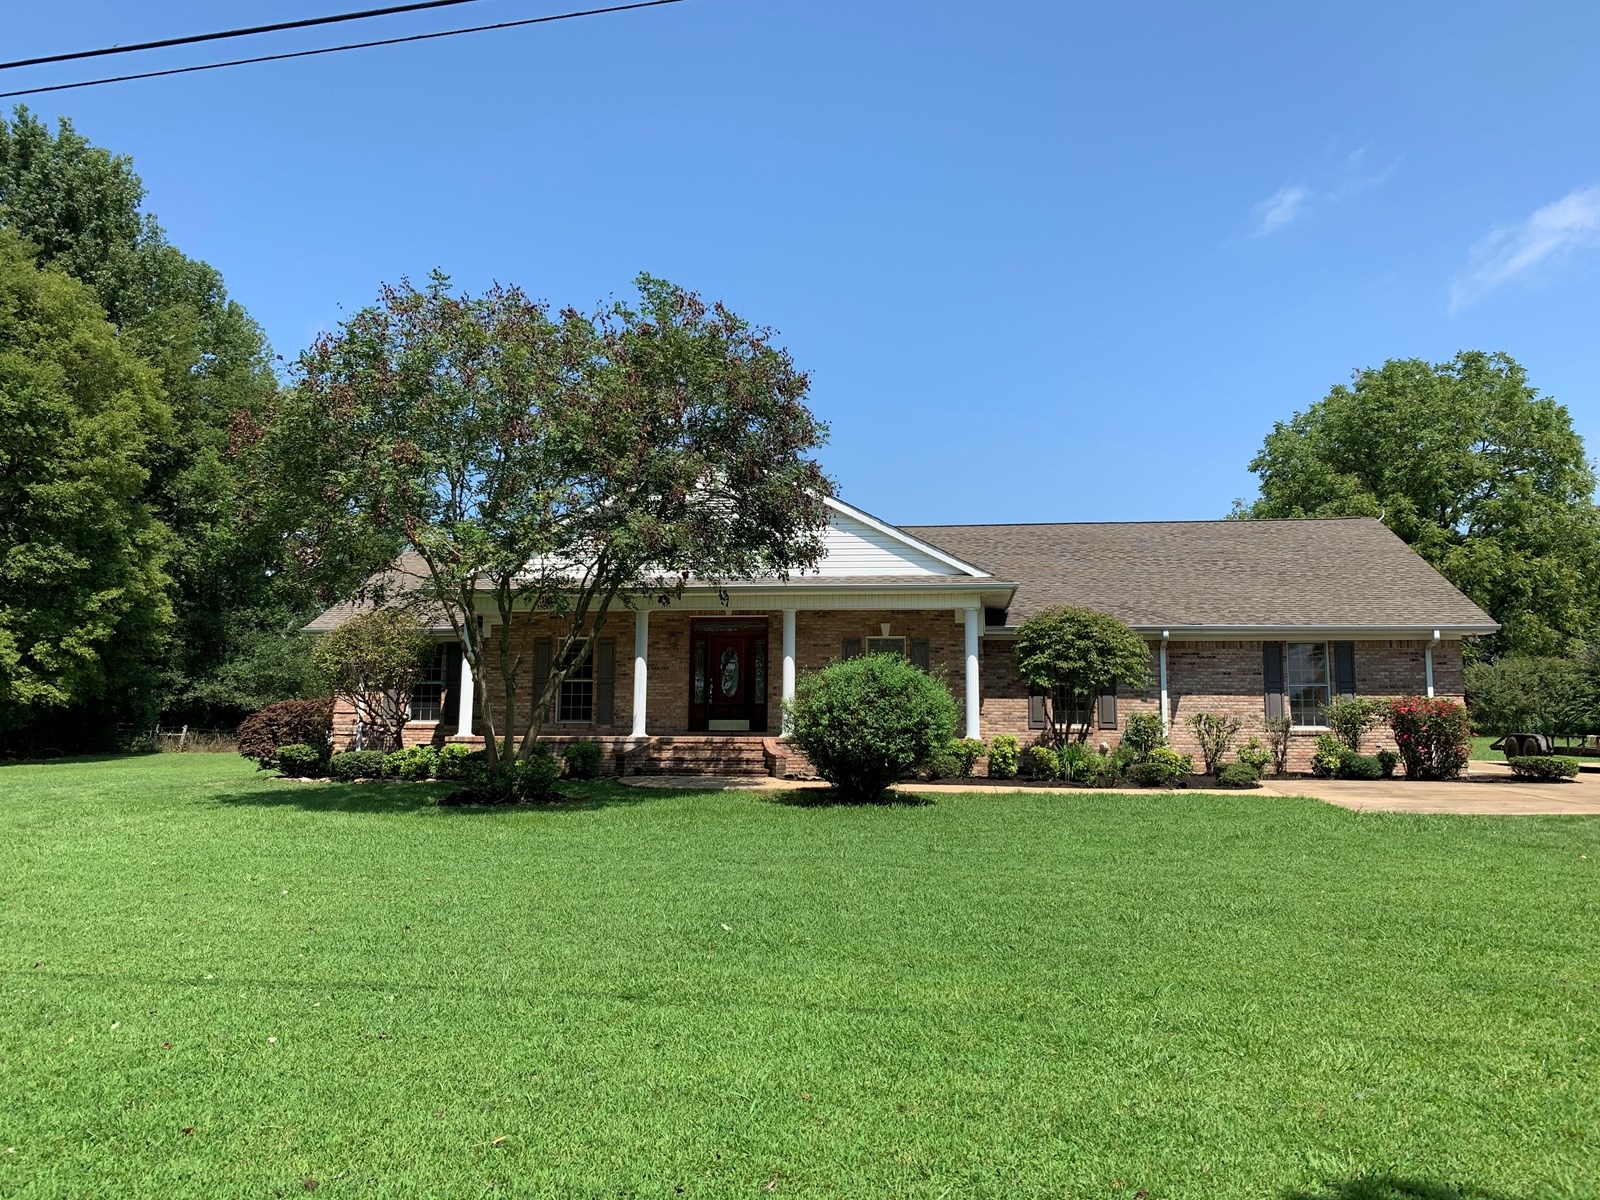 ALL BRICK COUNTRY HOME FOR SALE IN TN CLOSE TO TN RIVER